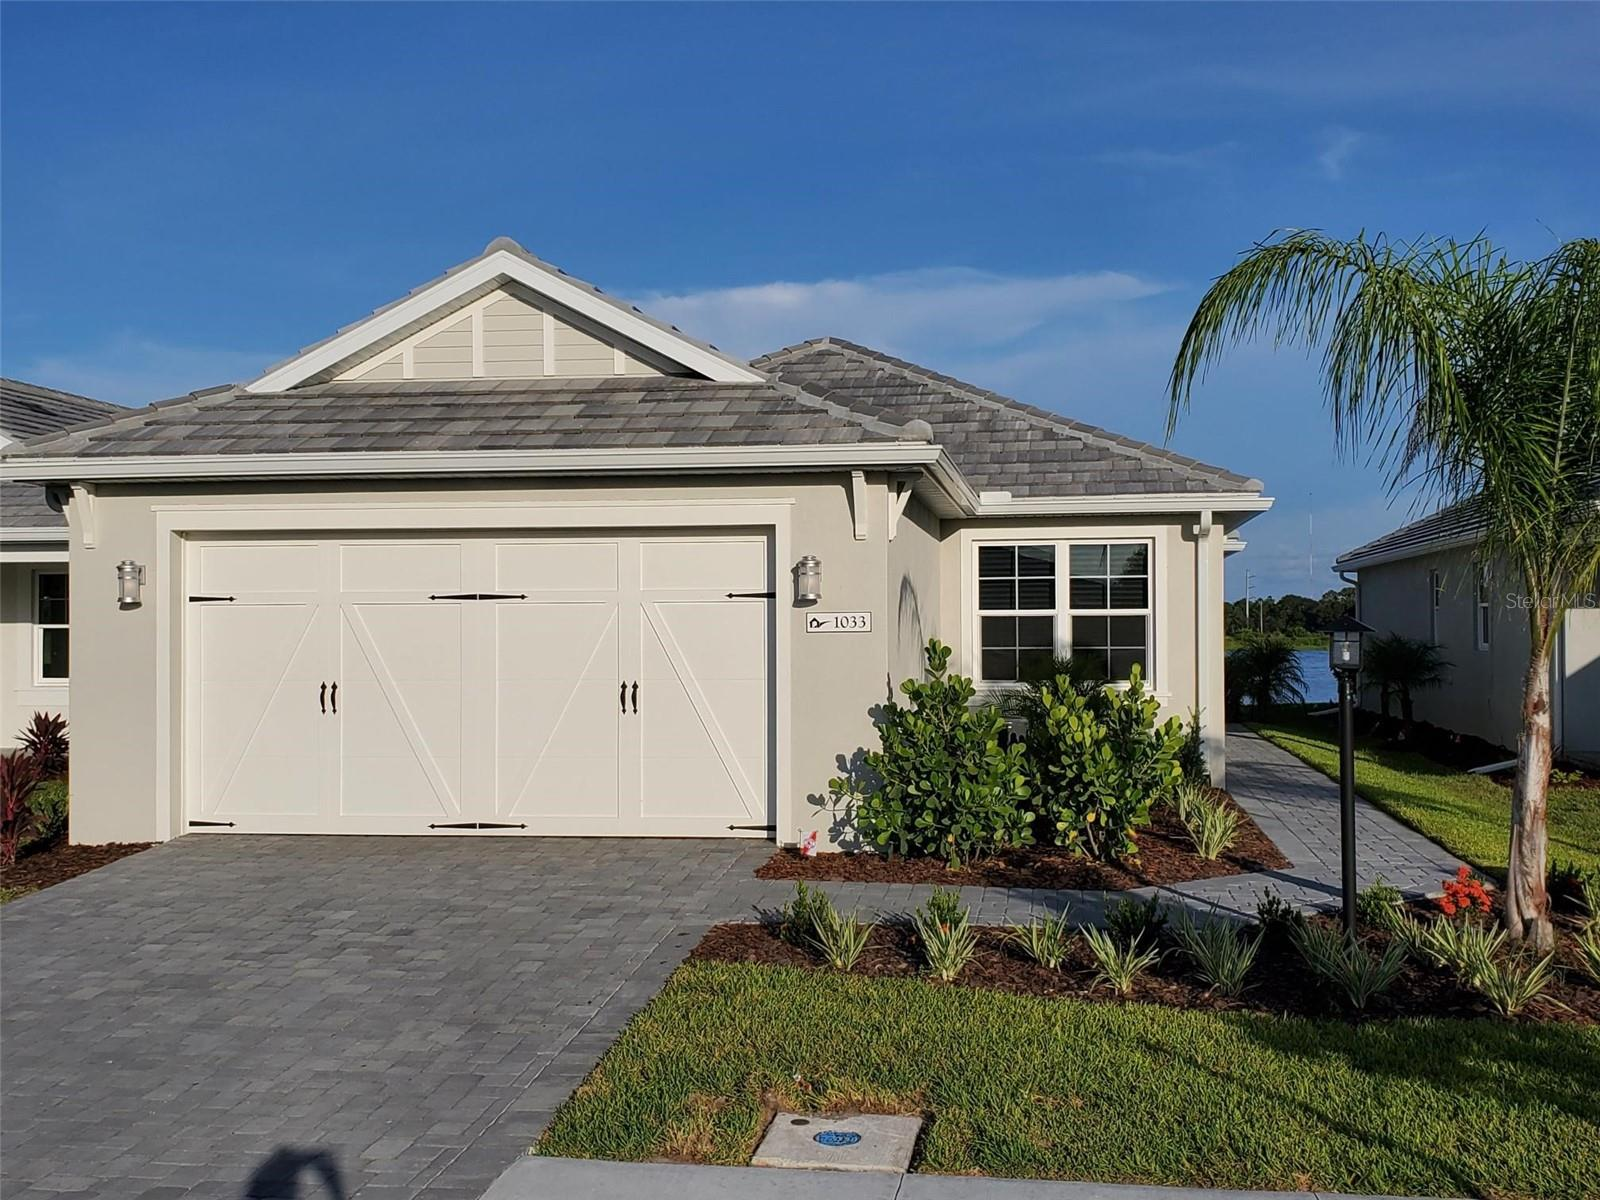 Primary photo of recently sold MLS# J933368